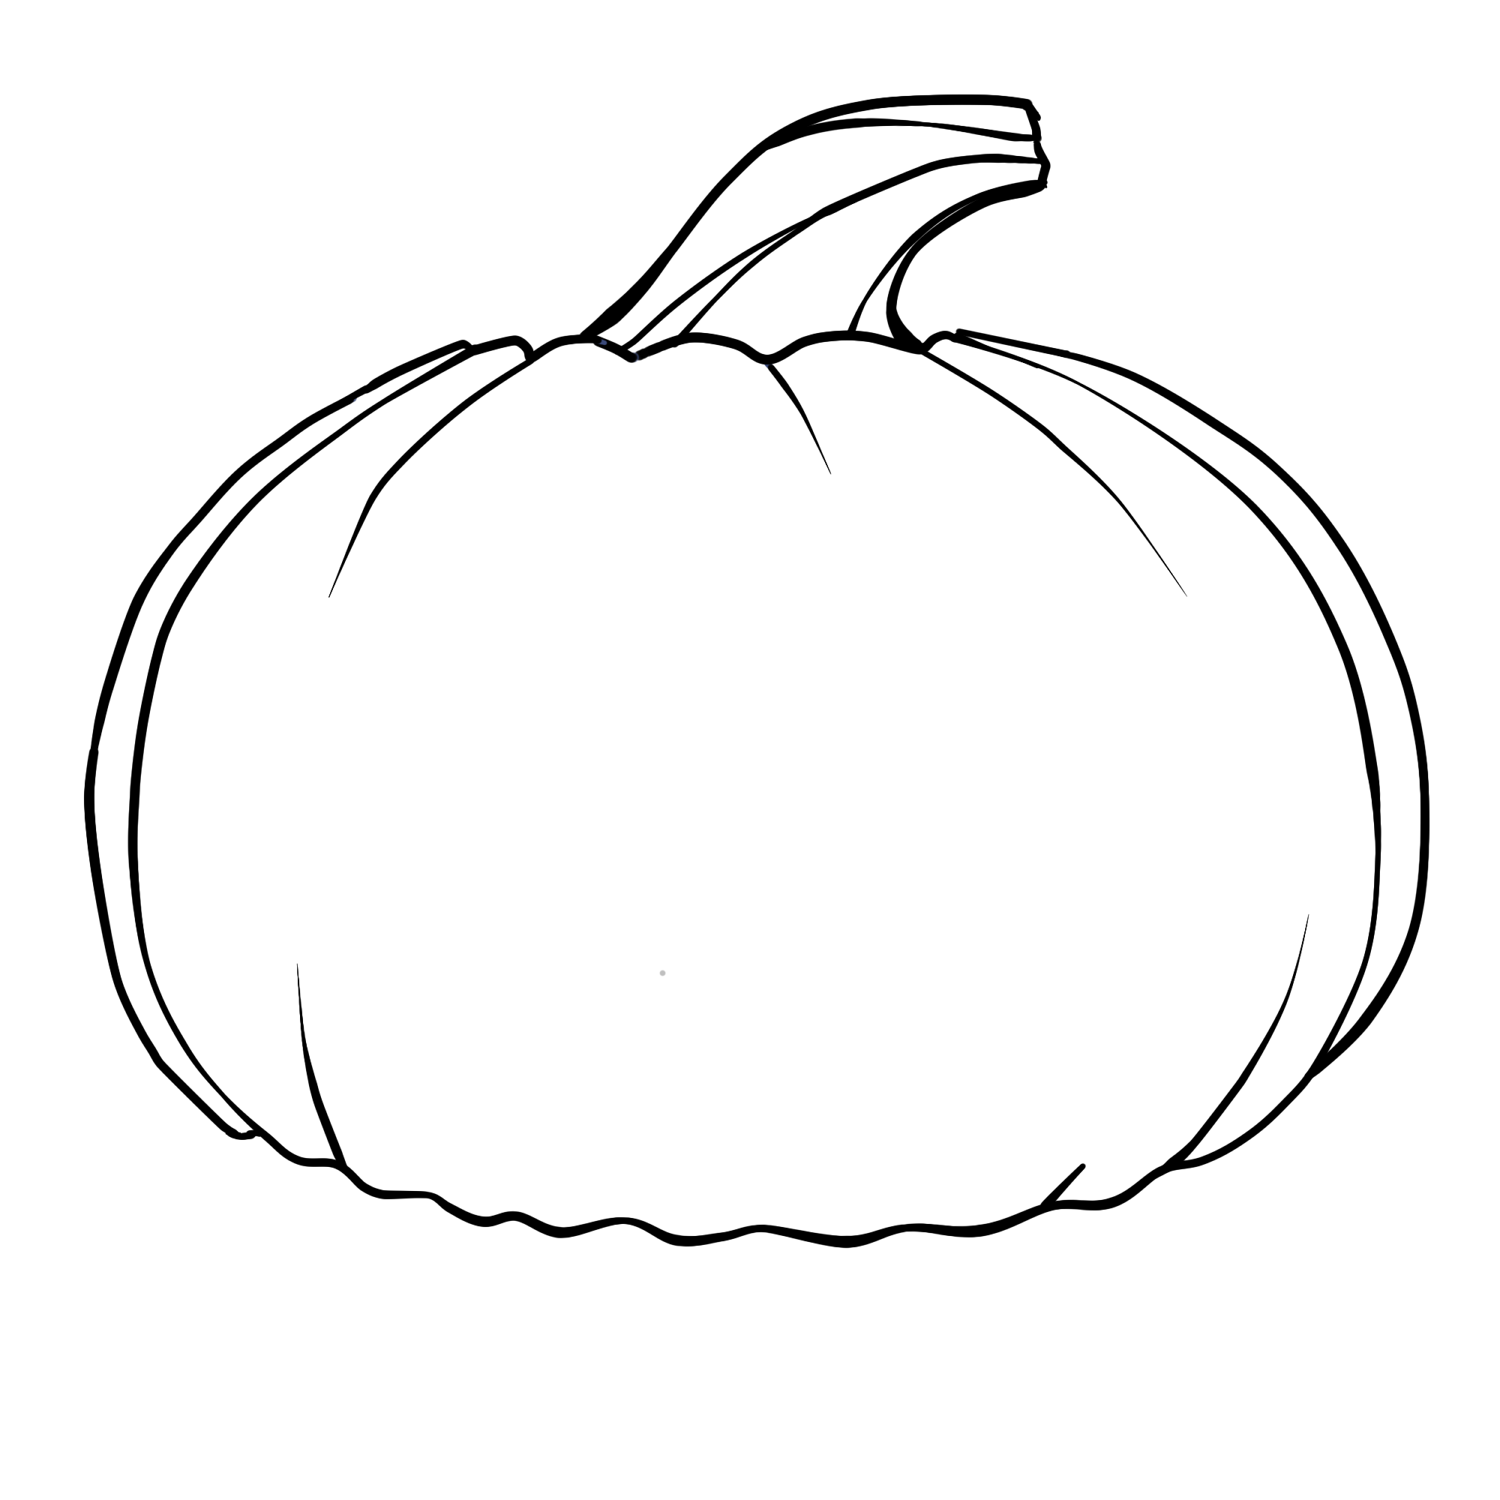 picture of pumpkin to color free printable pumpkin coloring pages for kids to picture color of pumpkin